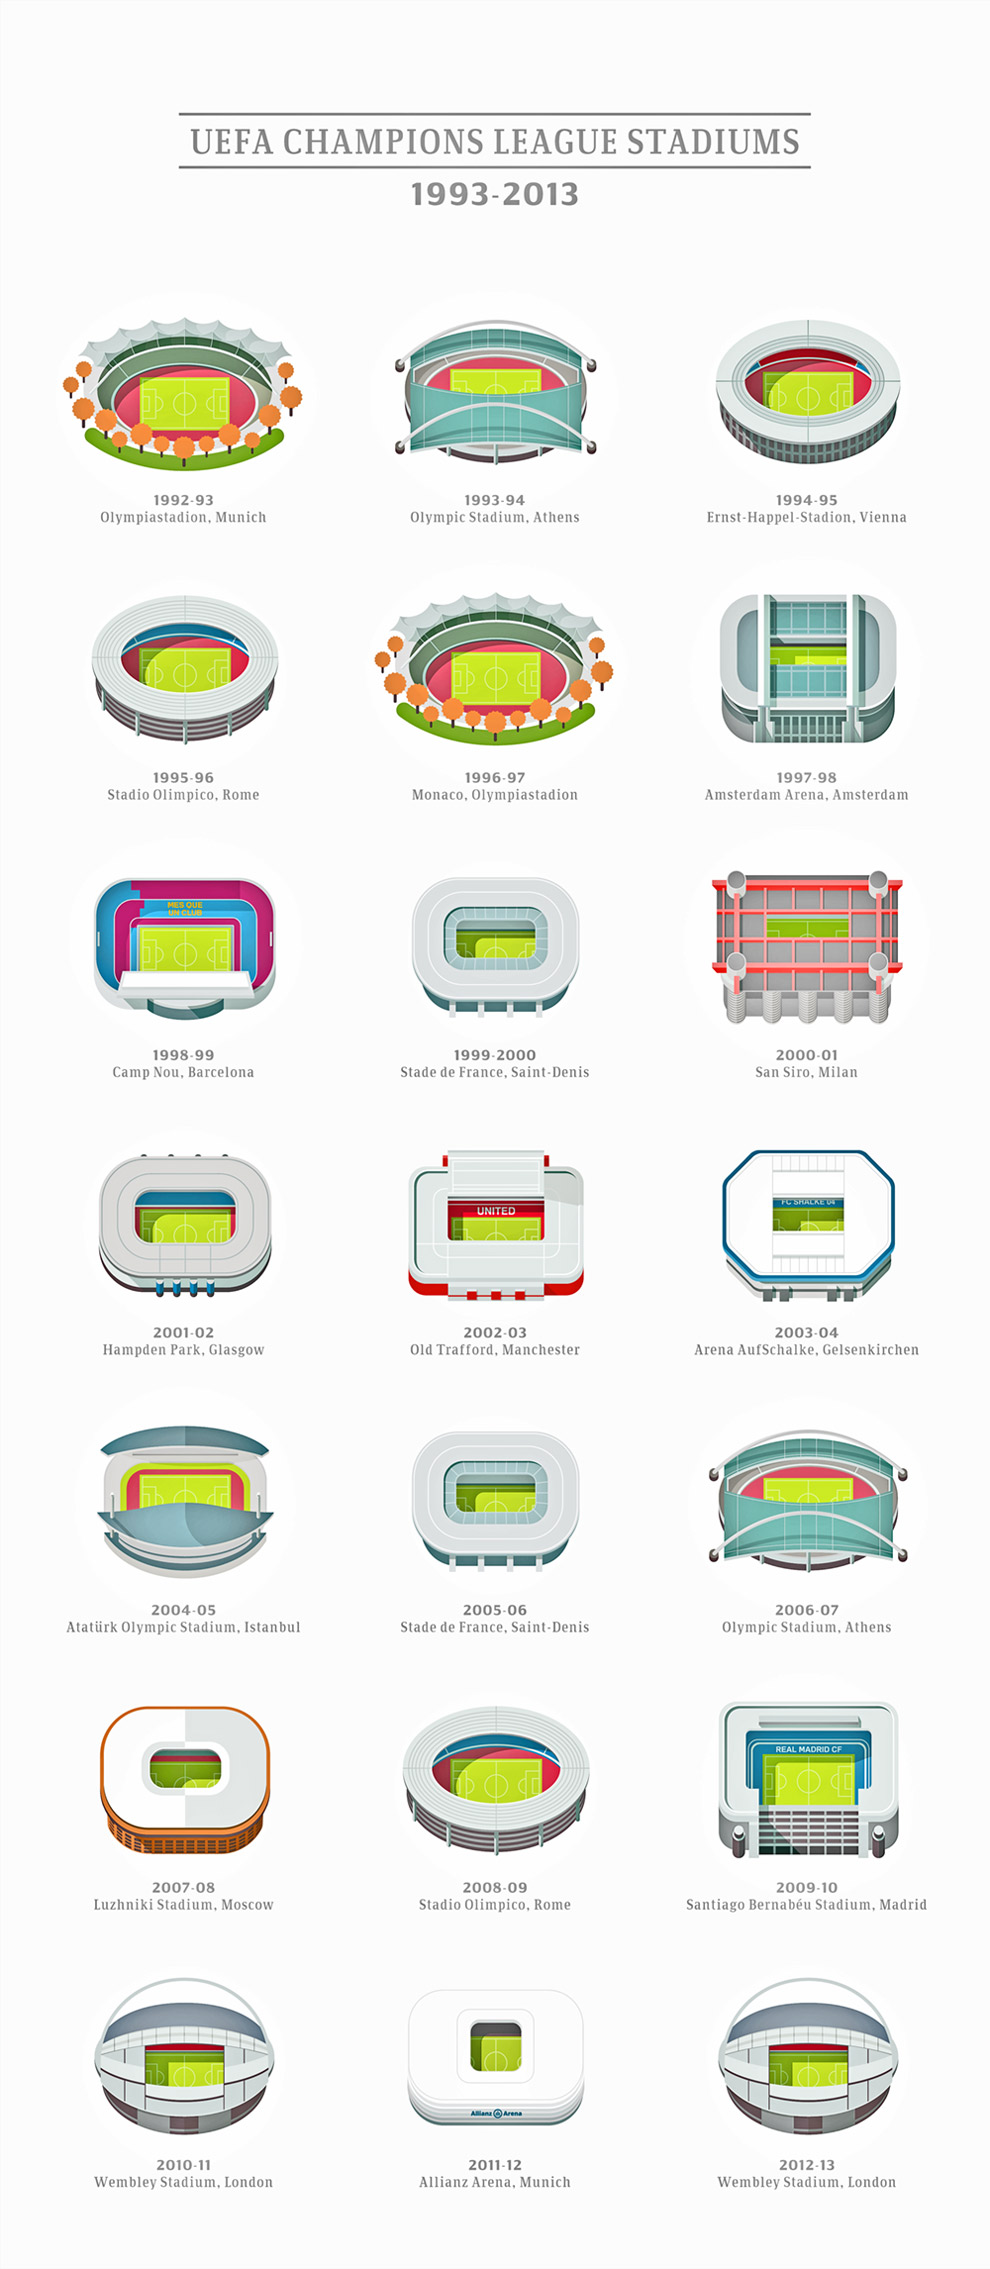 uefa-champions-league-stadiums.jpg